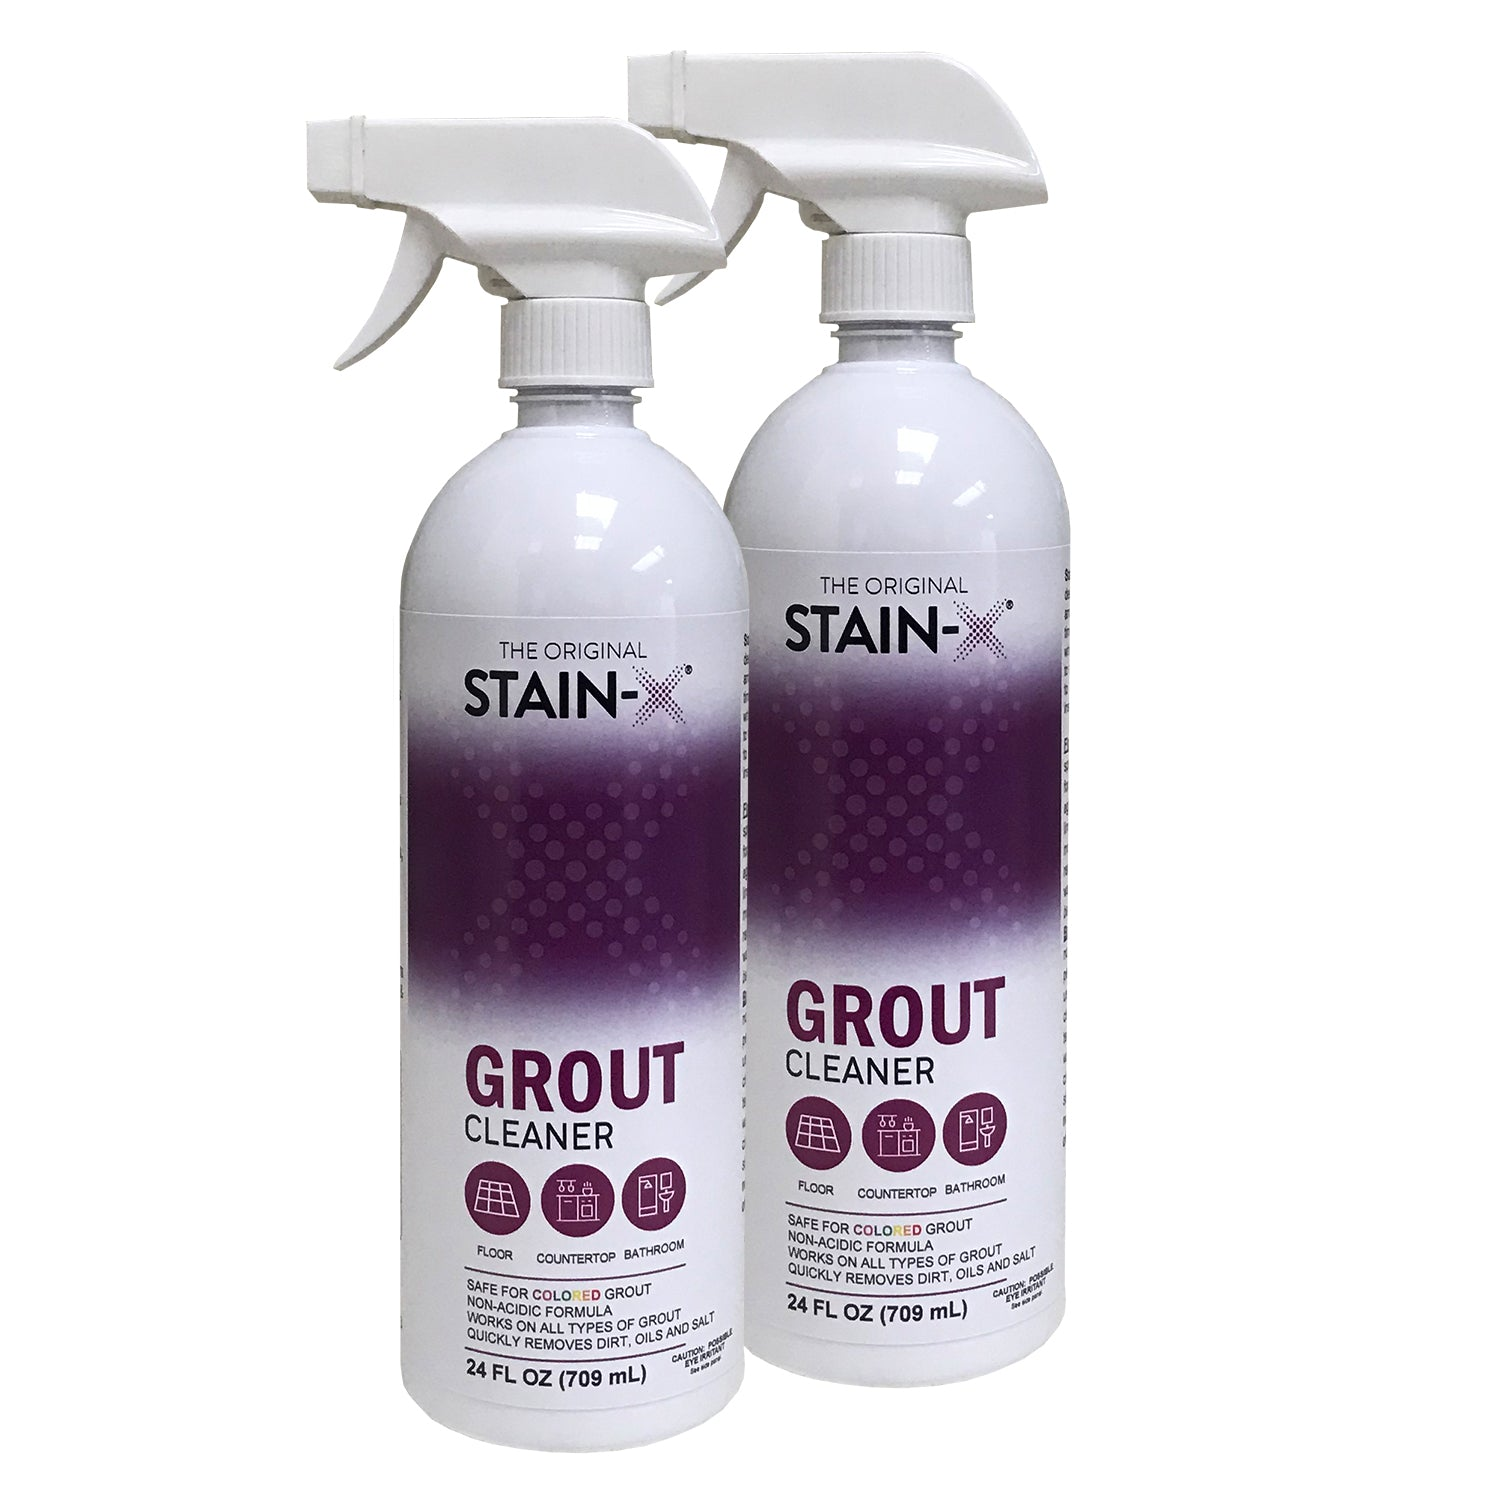 Stain-X Grout Cleaner 24 oz.